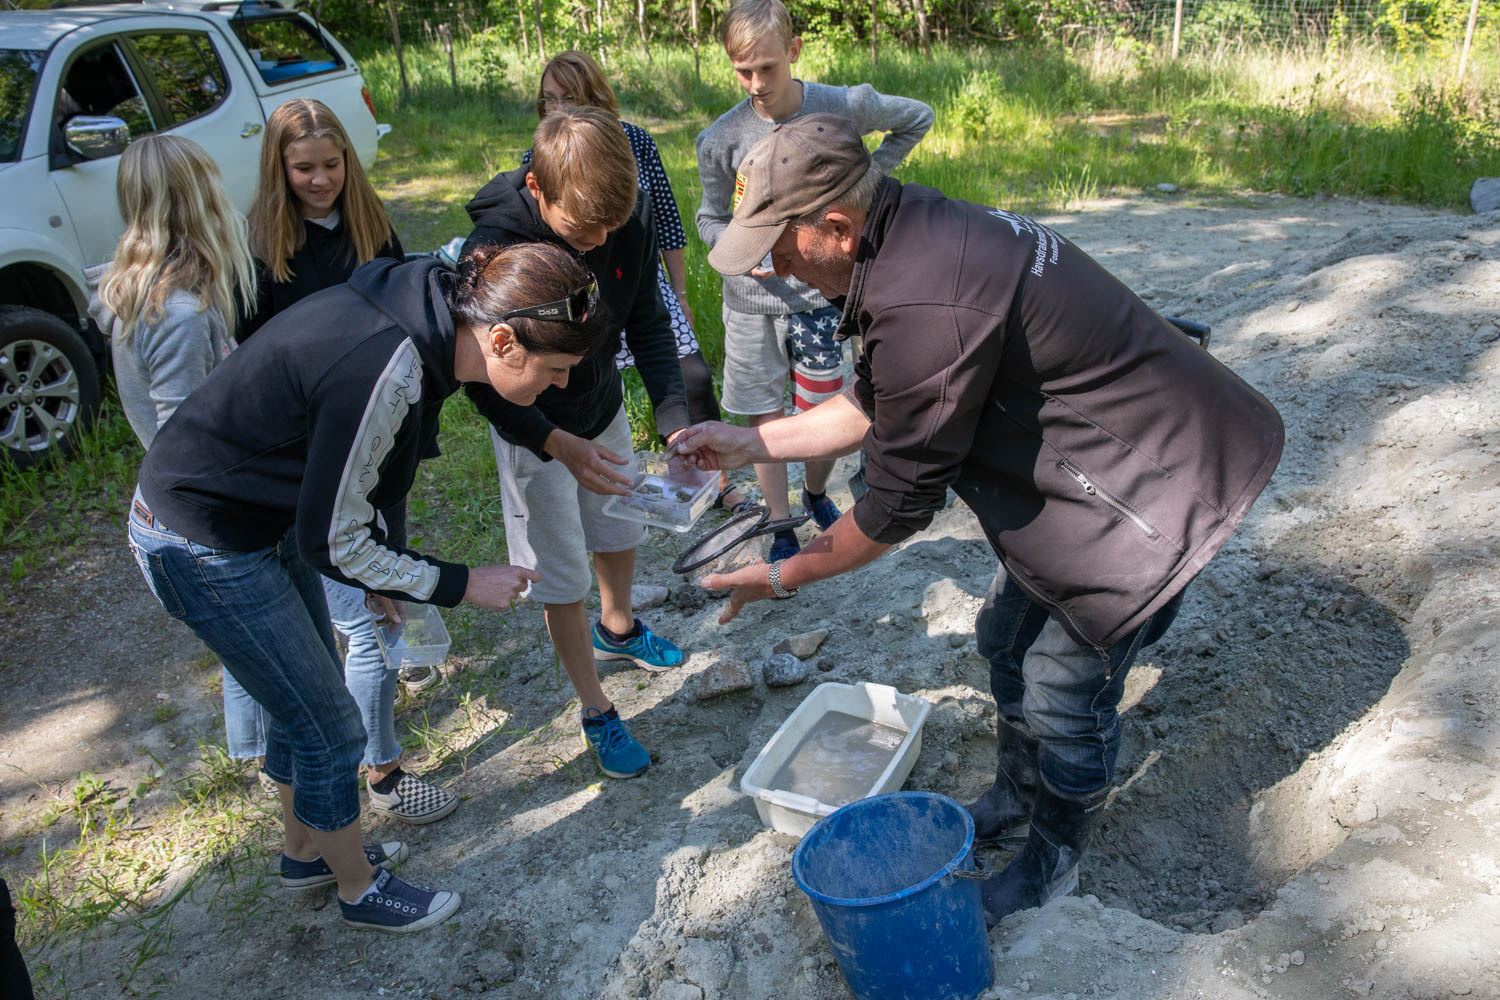 Filip gives information about the fossil finds